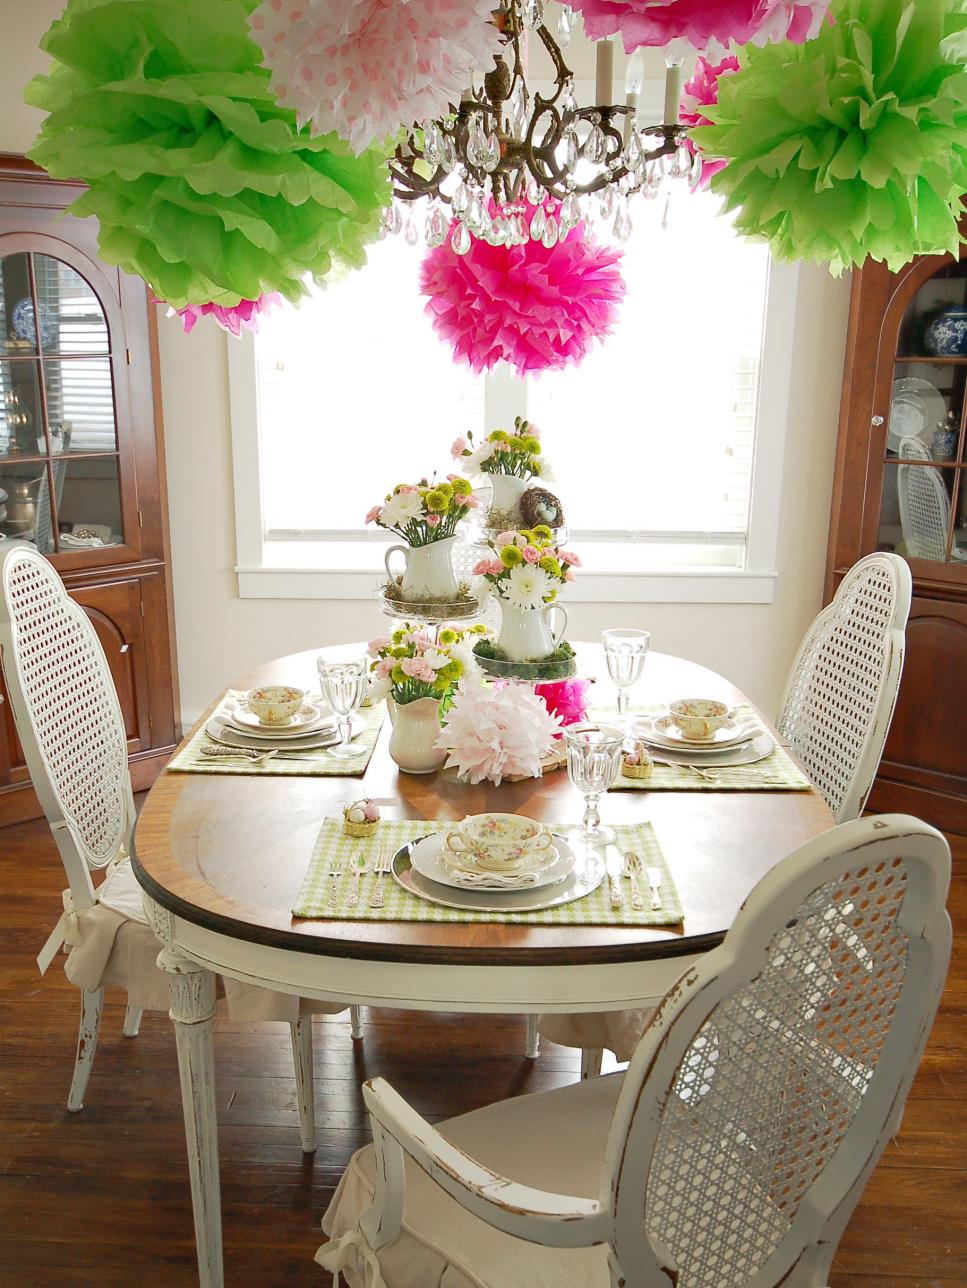 Colorful spring table setting hgtv for Dining table decoration ideas home